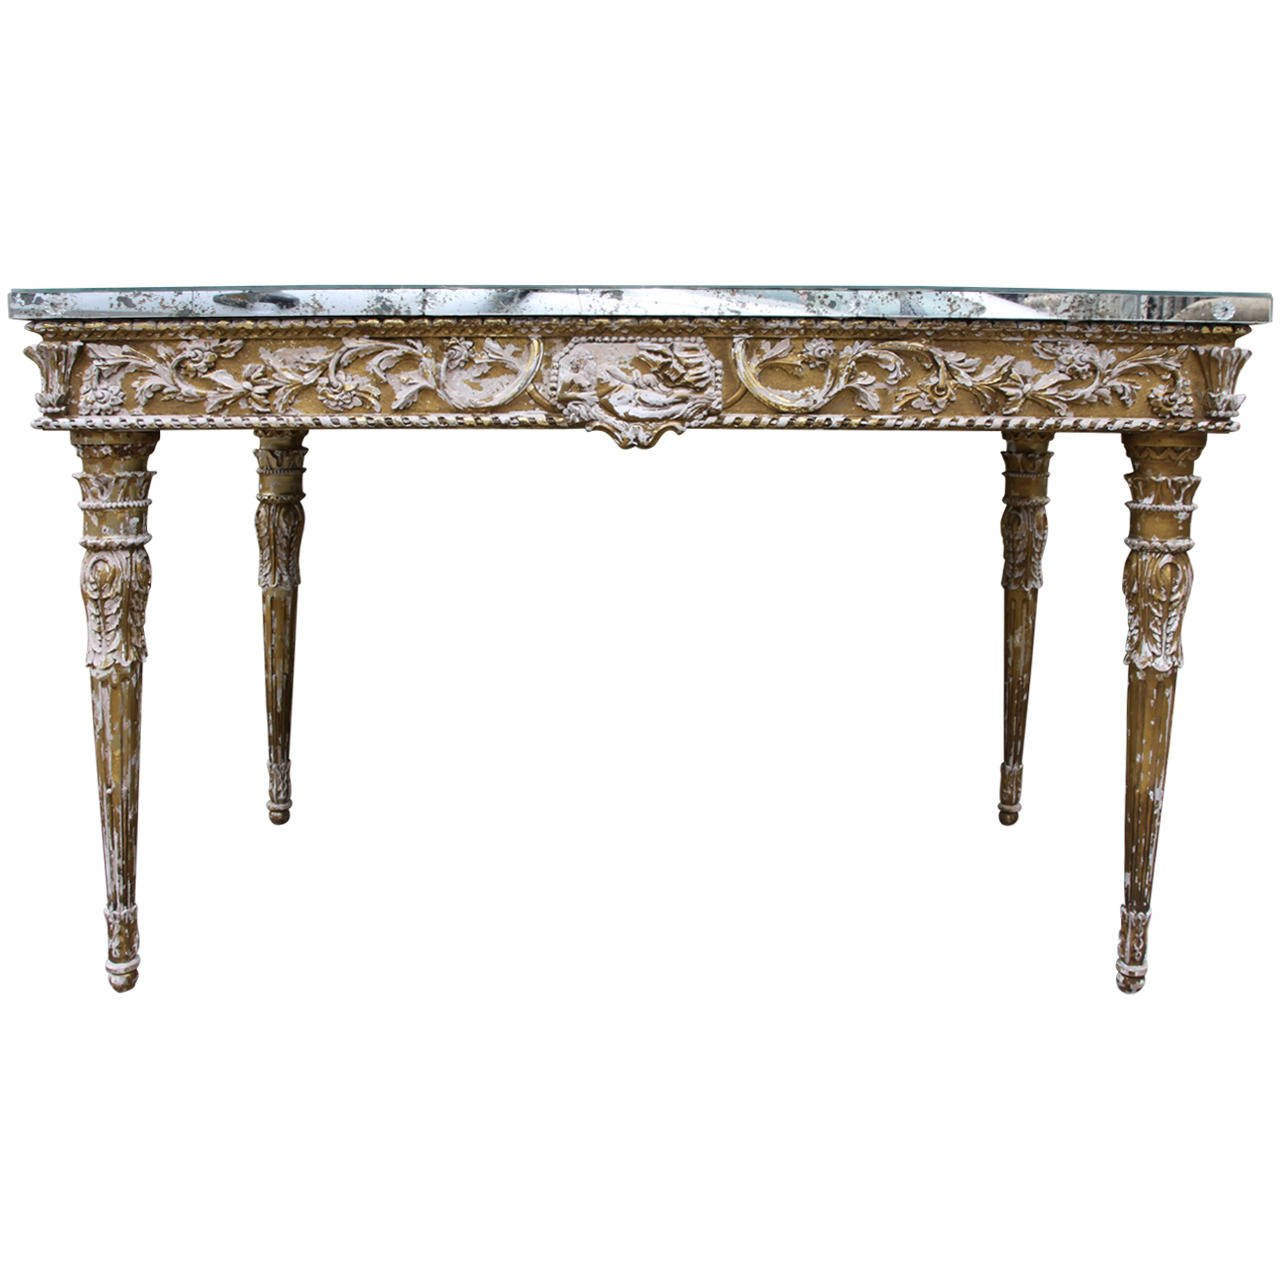 italian baroque style giltwood console with mirrored top melissa levinson antiques. Black Bedroom Furniture Sets. Home Design Ideas